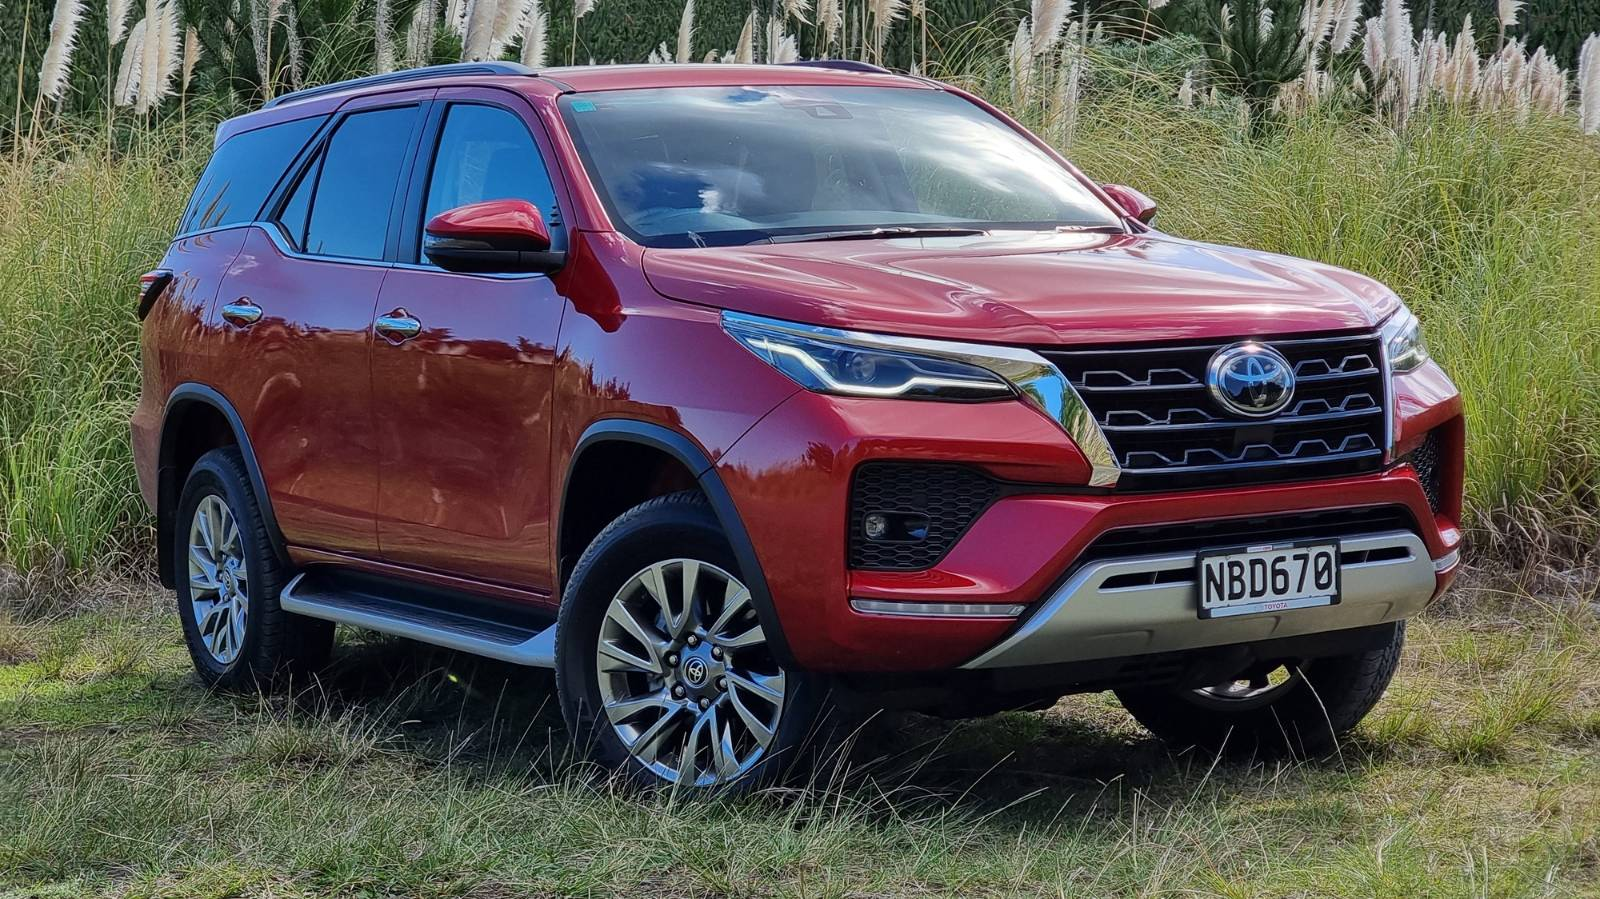 Facelifted Fortuner still a capable contender